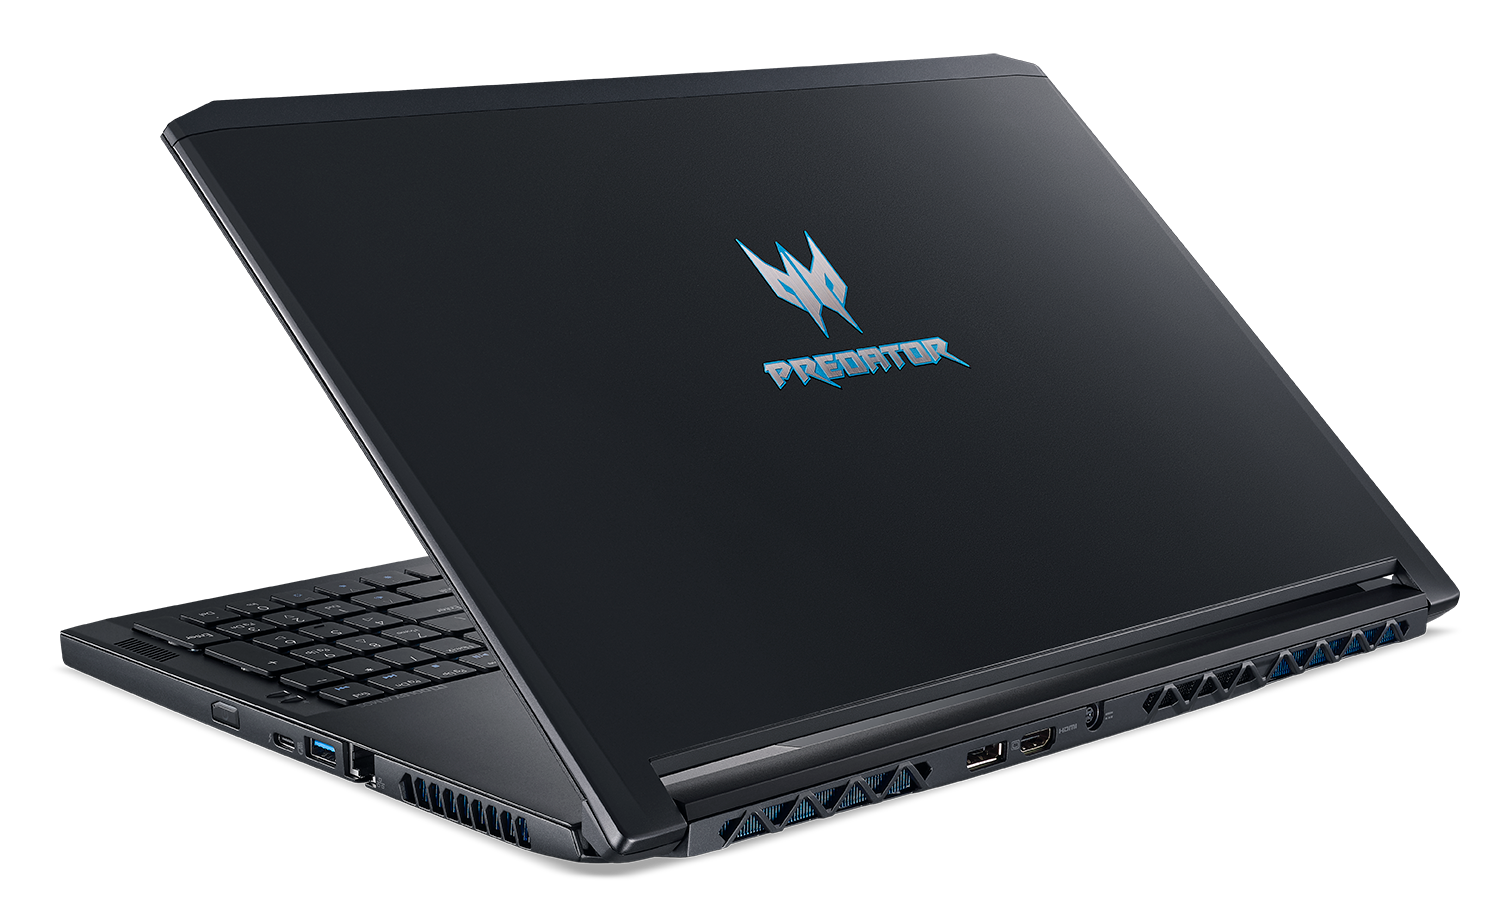 Predator makes high-power gaming more mobile with the launch of the new Triton 700